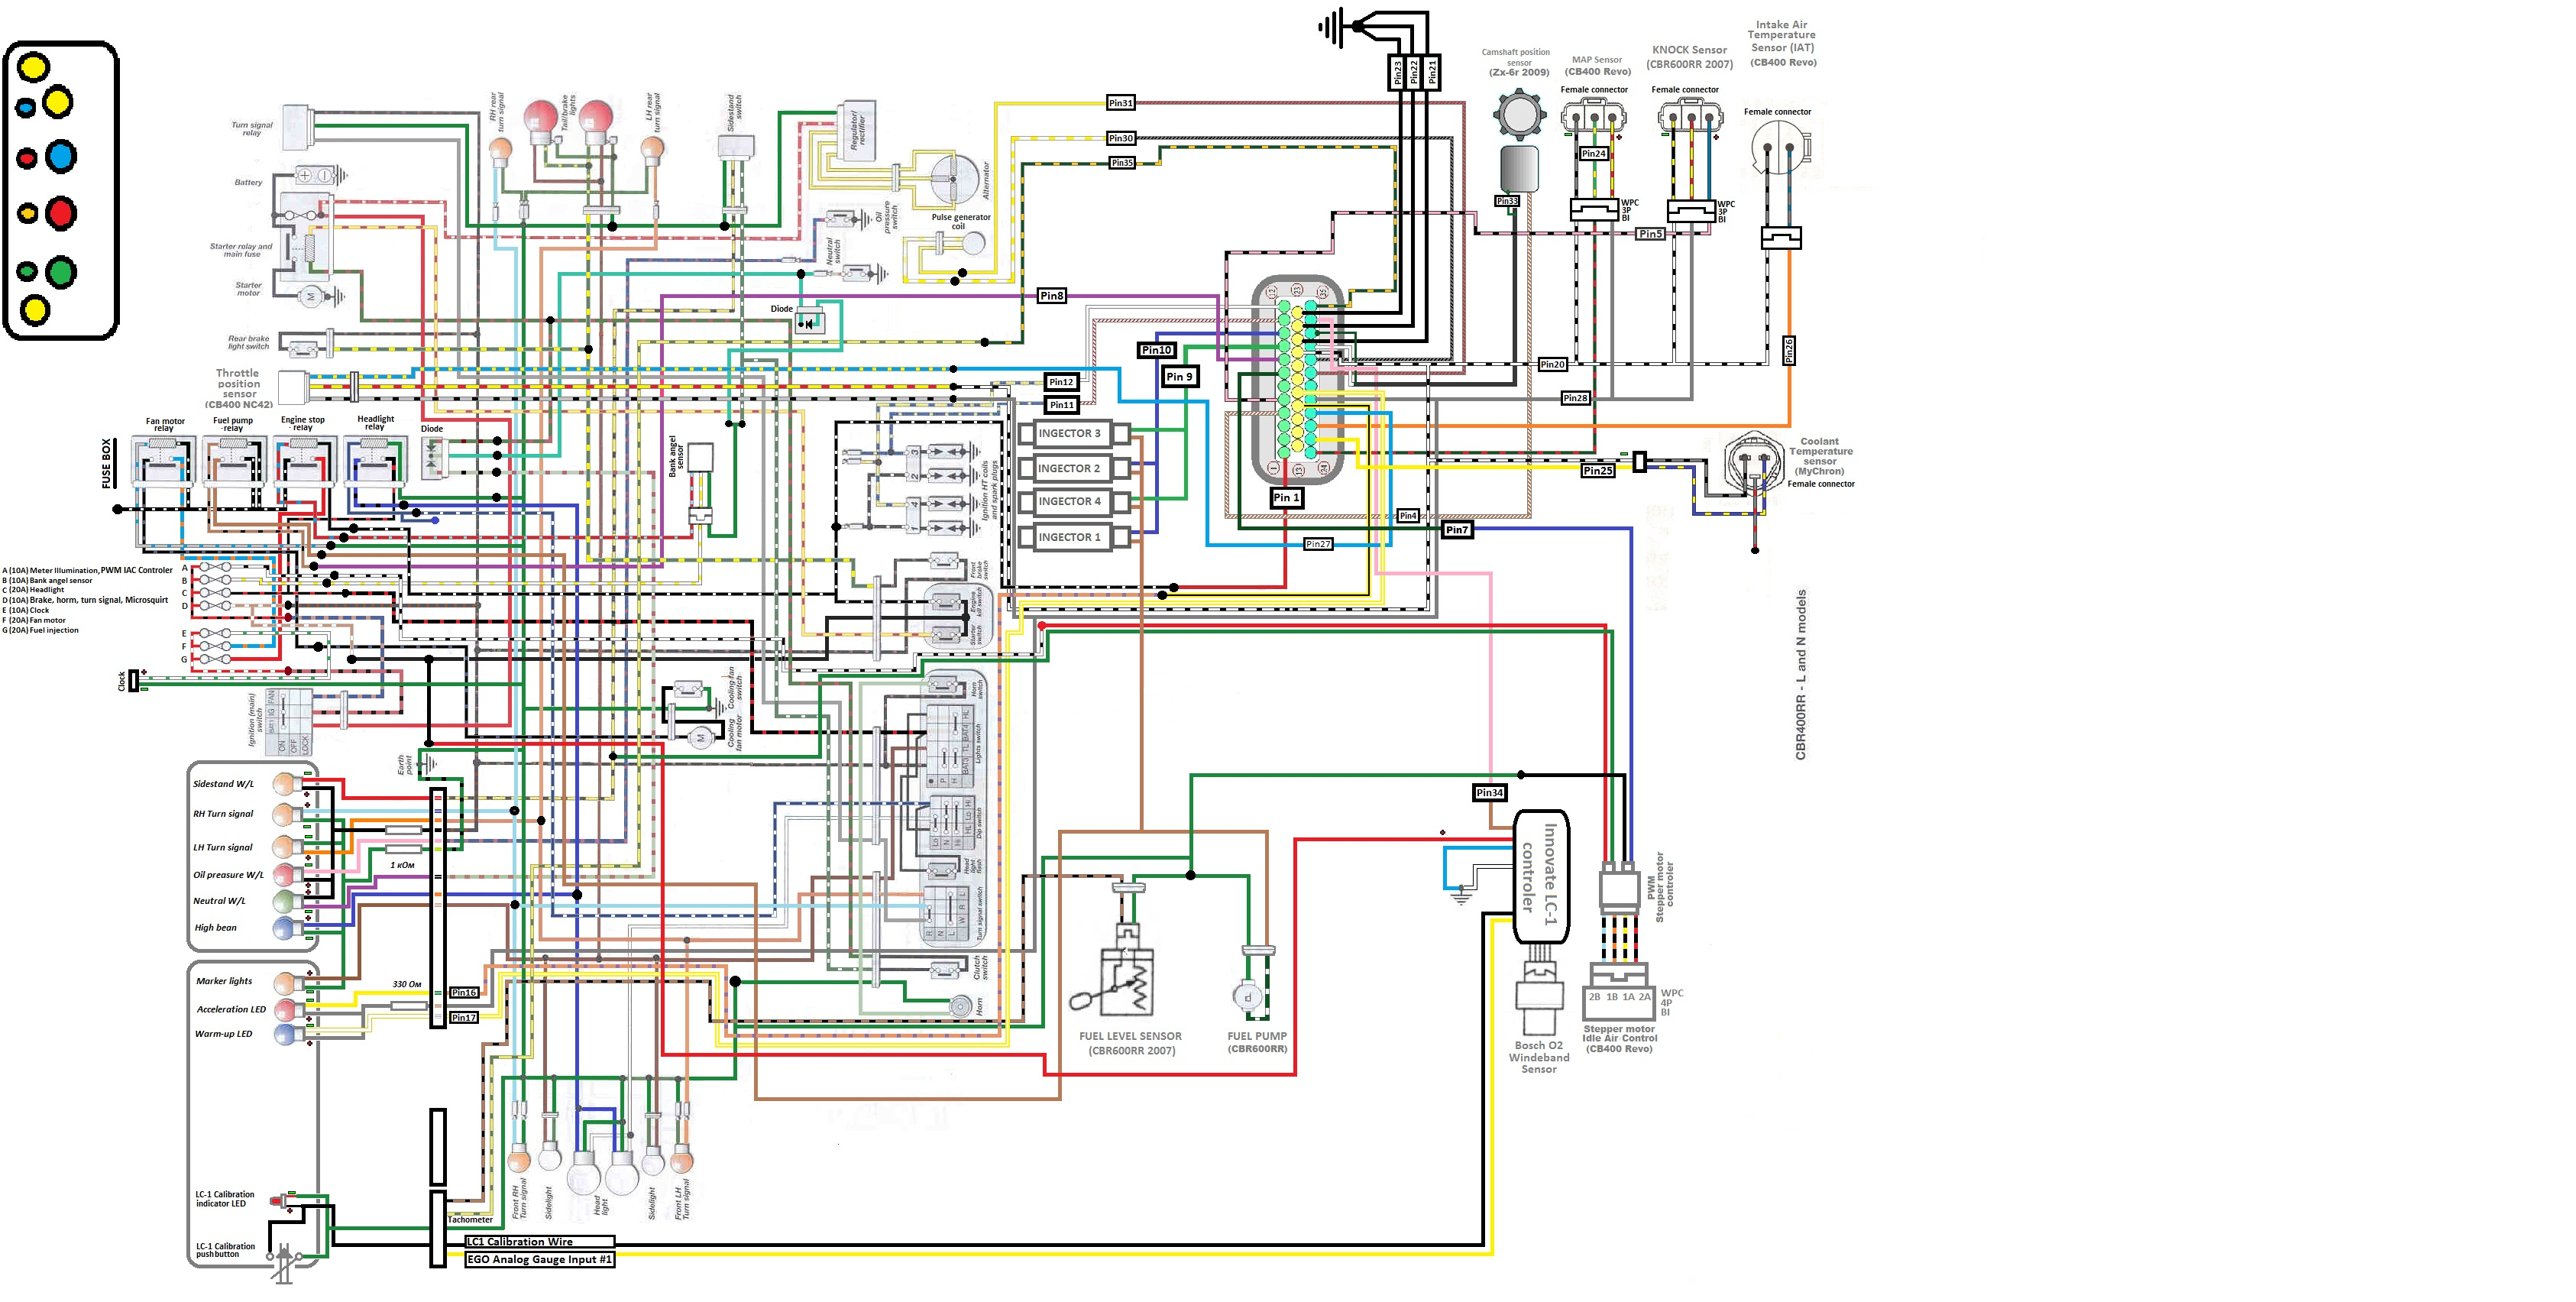 Cool Gs850 Wiring Diagram Wiring Library Wiring Digital Resources Indicompassionincorg